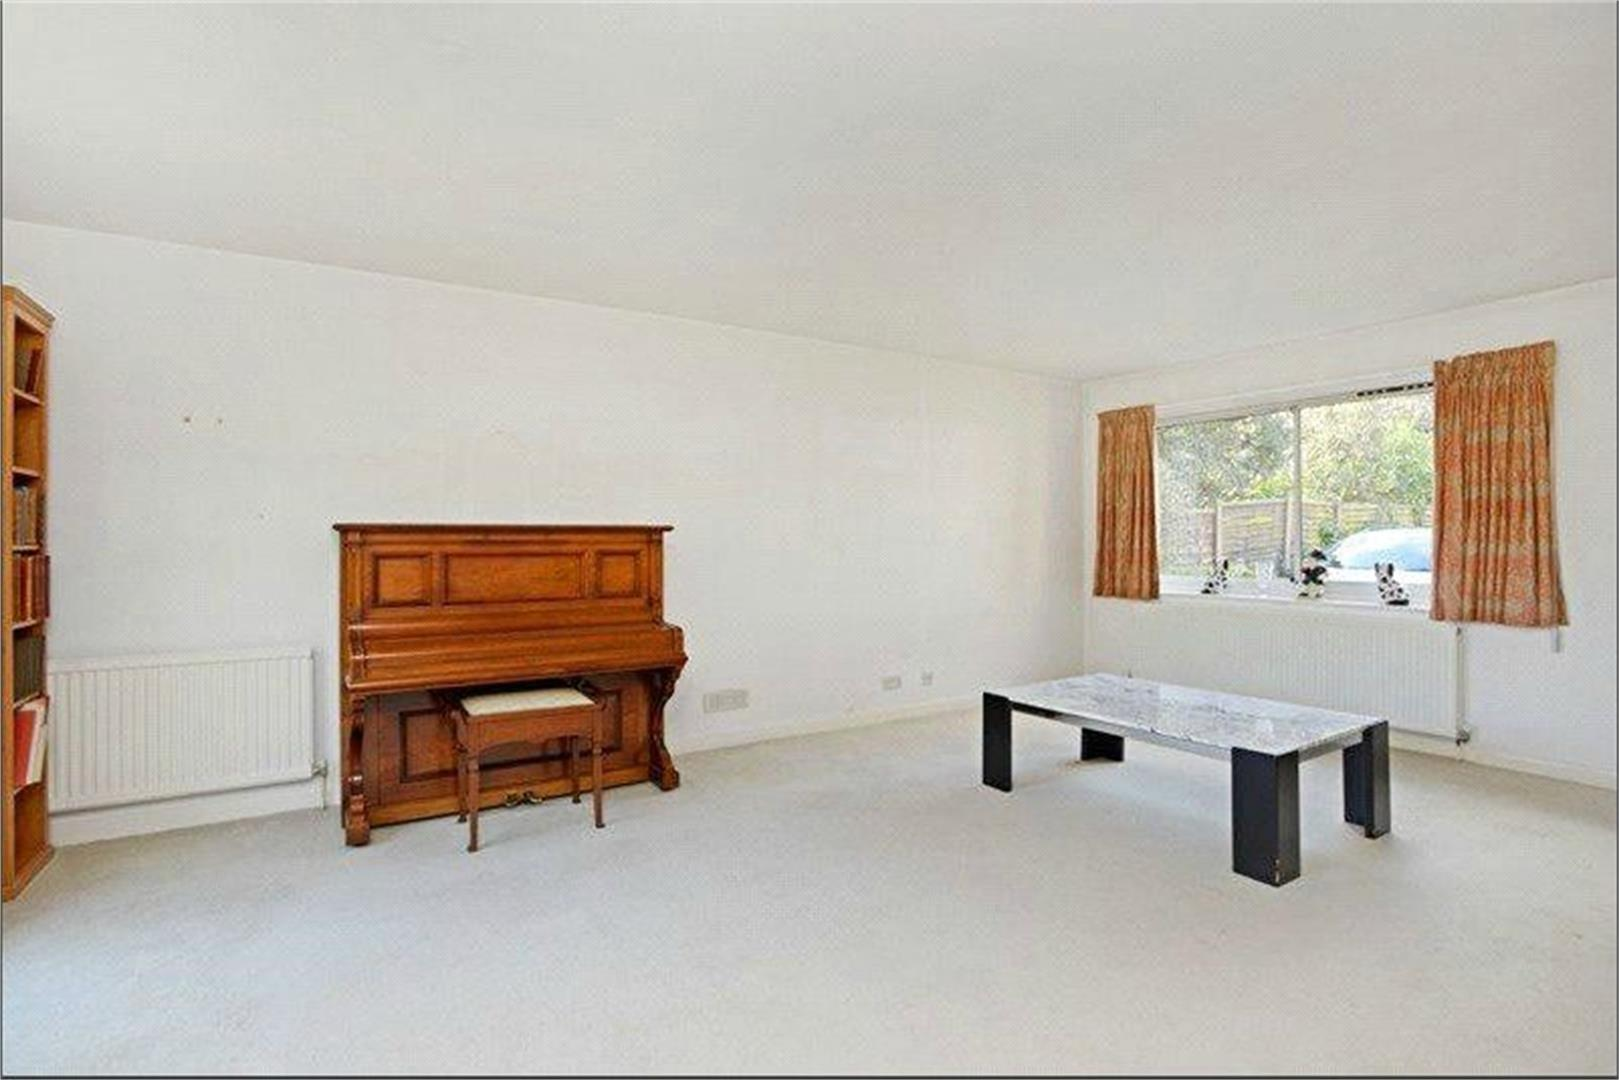 4 bed to rent - (Property Image 3)